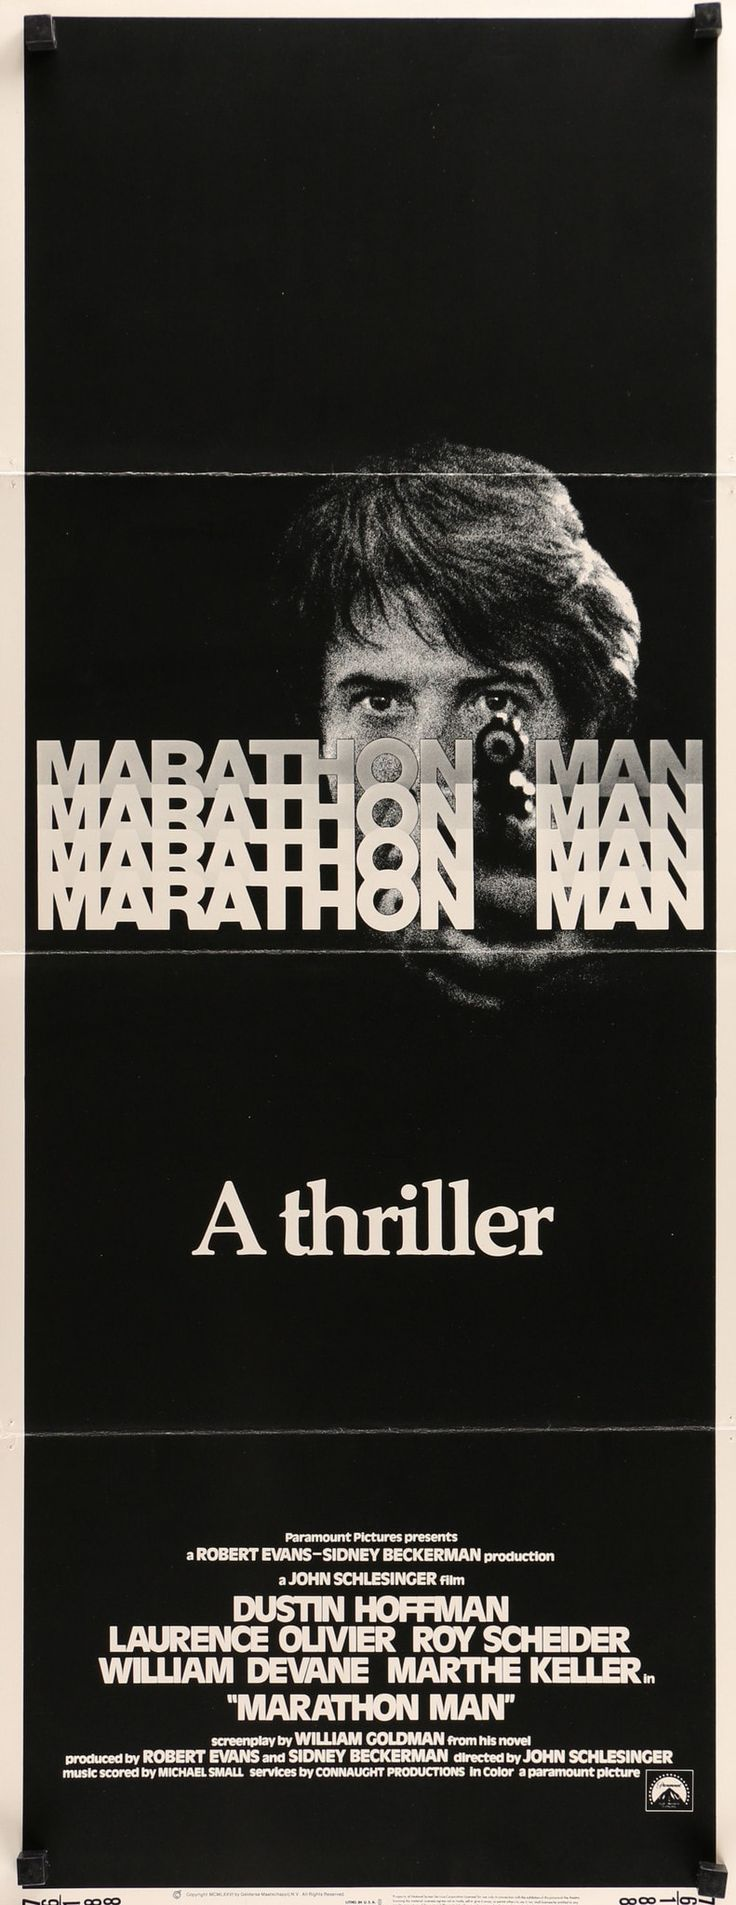 """Film: Marathon Man (1976) Year poster printed: 1976 Country: USA Size: 14""""x 36"""" This is an original, insert movie poster from 1976 for Marathon Man starring Dustin Hoffman, Laurence Olivier, Roy Schei"""